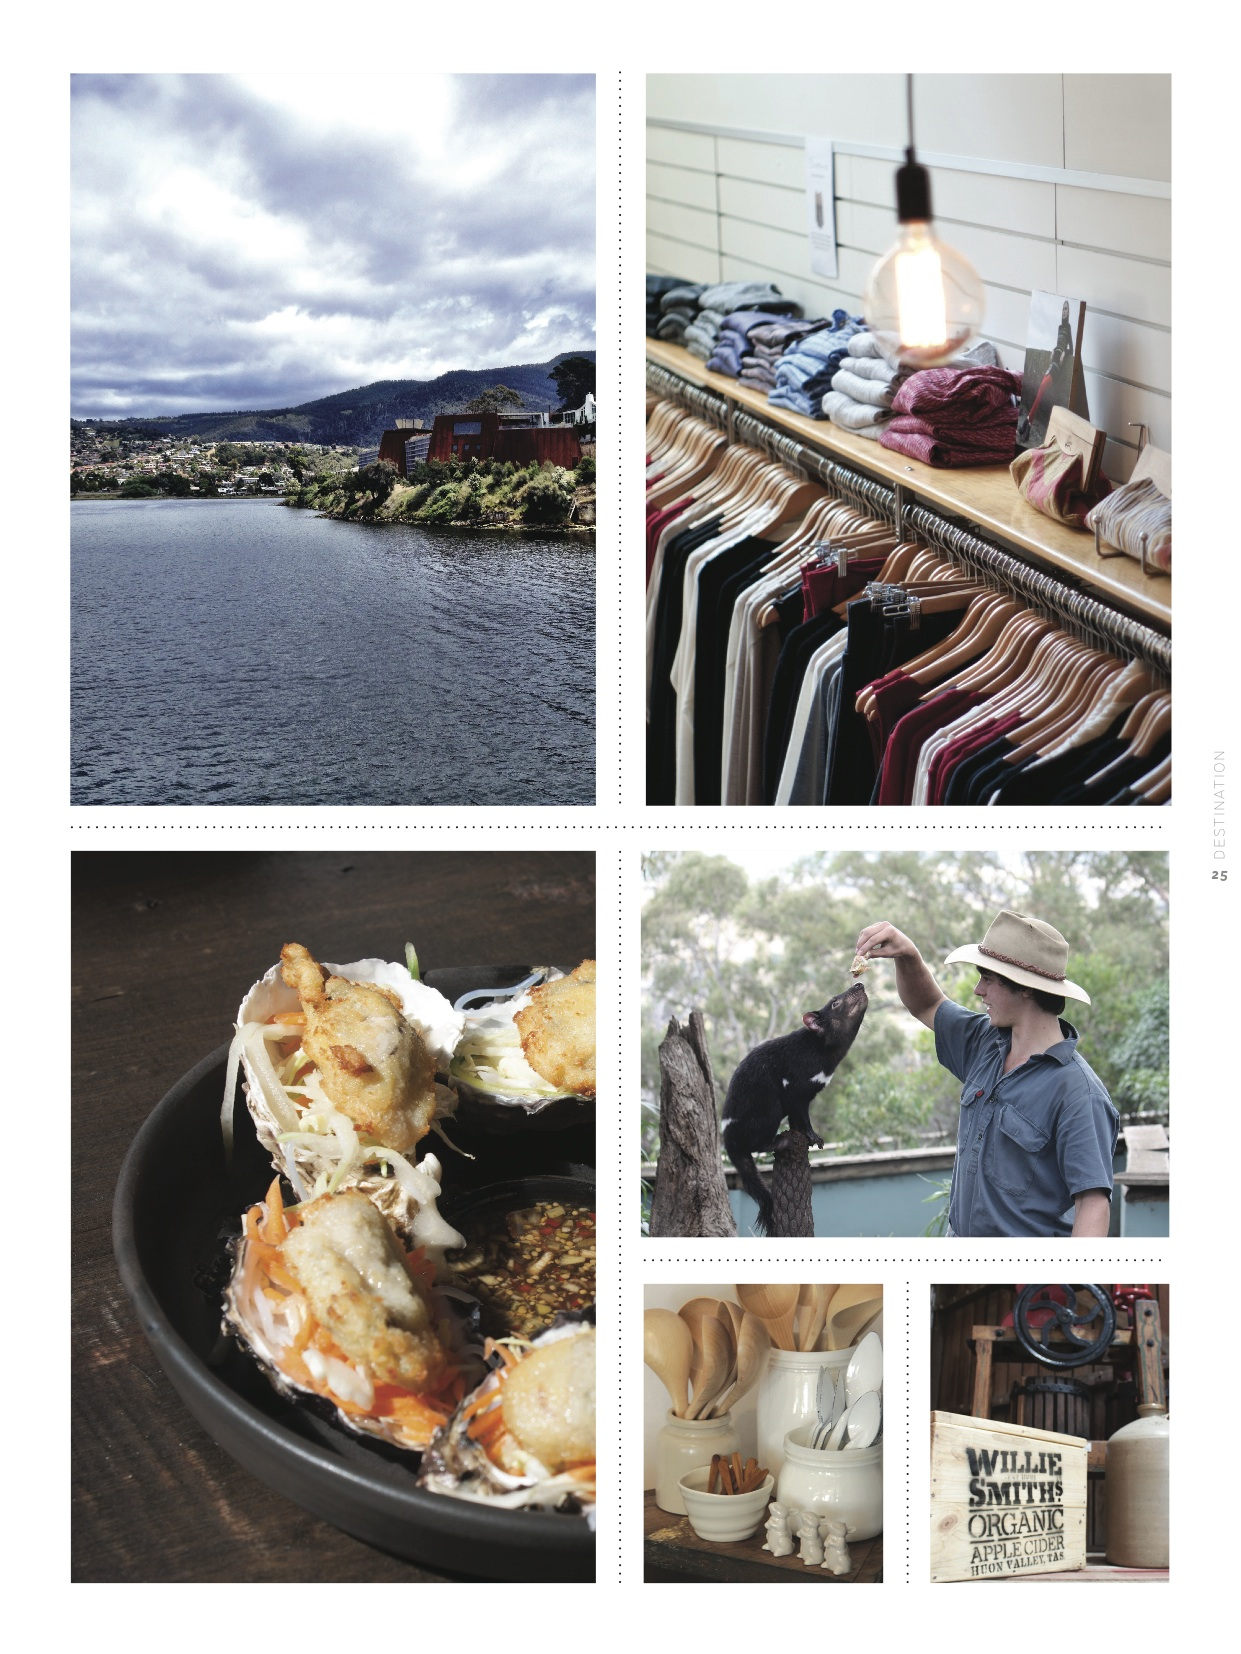 Hobart's creative class is upcycling, crafting and curing their city into a bastion of sustainable fashion, design and cuisine